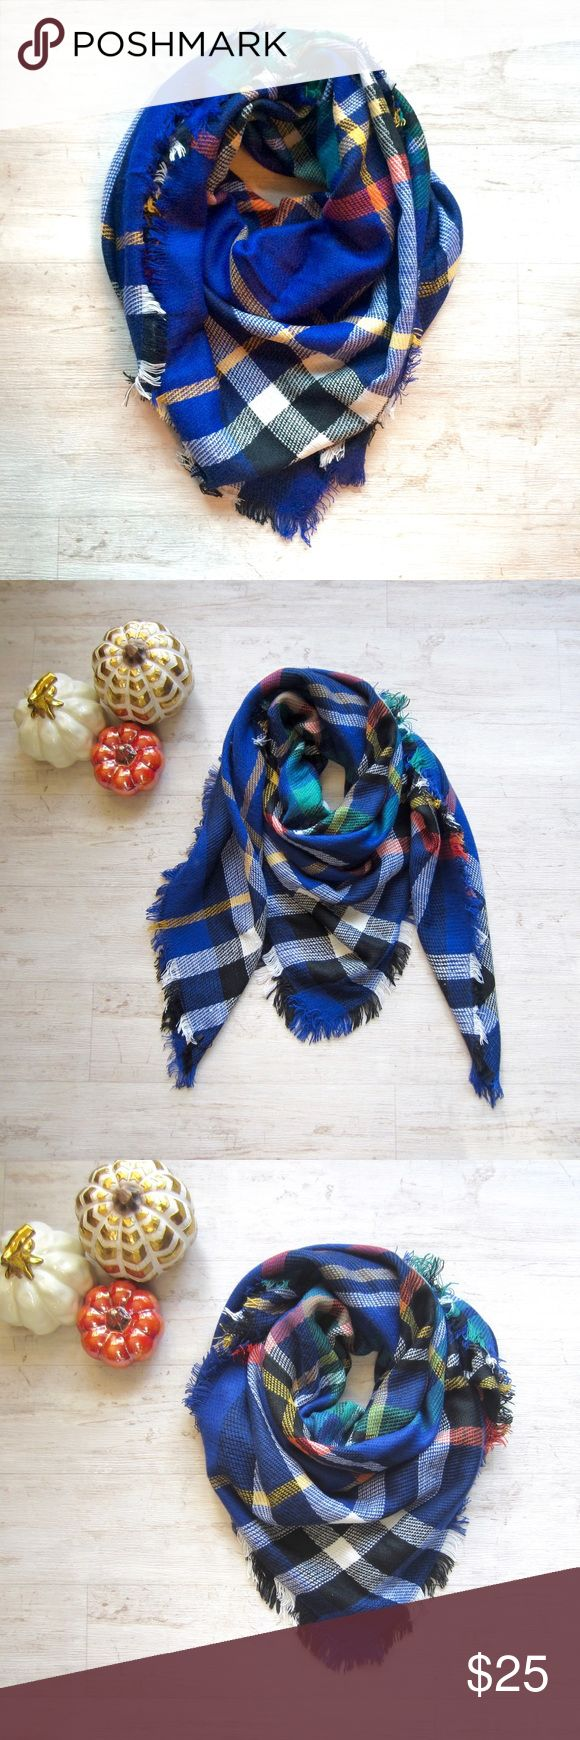 """SALE 🎁 Blue Tartan Blanket Scarf Ladies, it's time to stock up on this season's must have blanket scarves. Bundle up in this cozy royal blue, orange, yellow, green, black & white plaid scarf. 100% acrylic. 57"""" x 57"""" square. Get yours now before they are gone! Blanket scarves also make for great Christmas gifts. 👍🏼🌲🎁 Note, I am unable to accept offers on boutique items. Boutique Accessories Scarves & Wraps"""